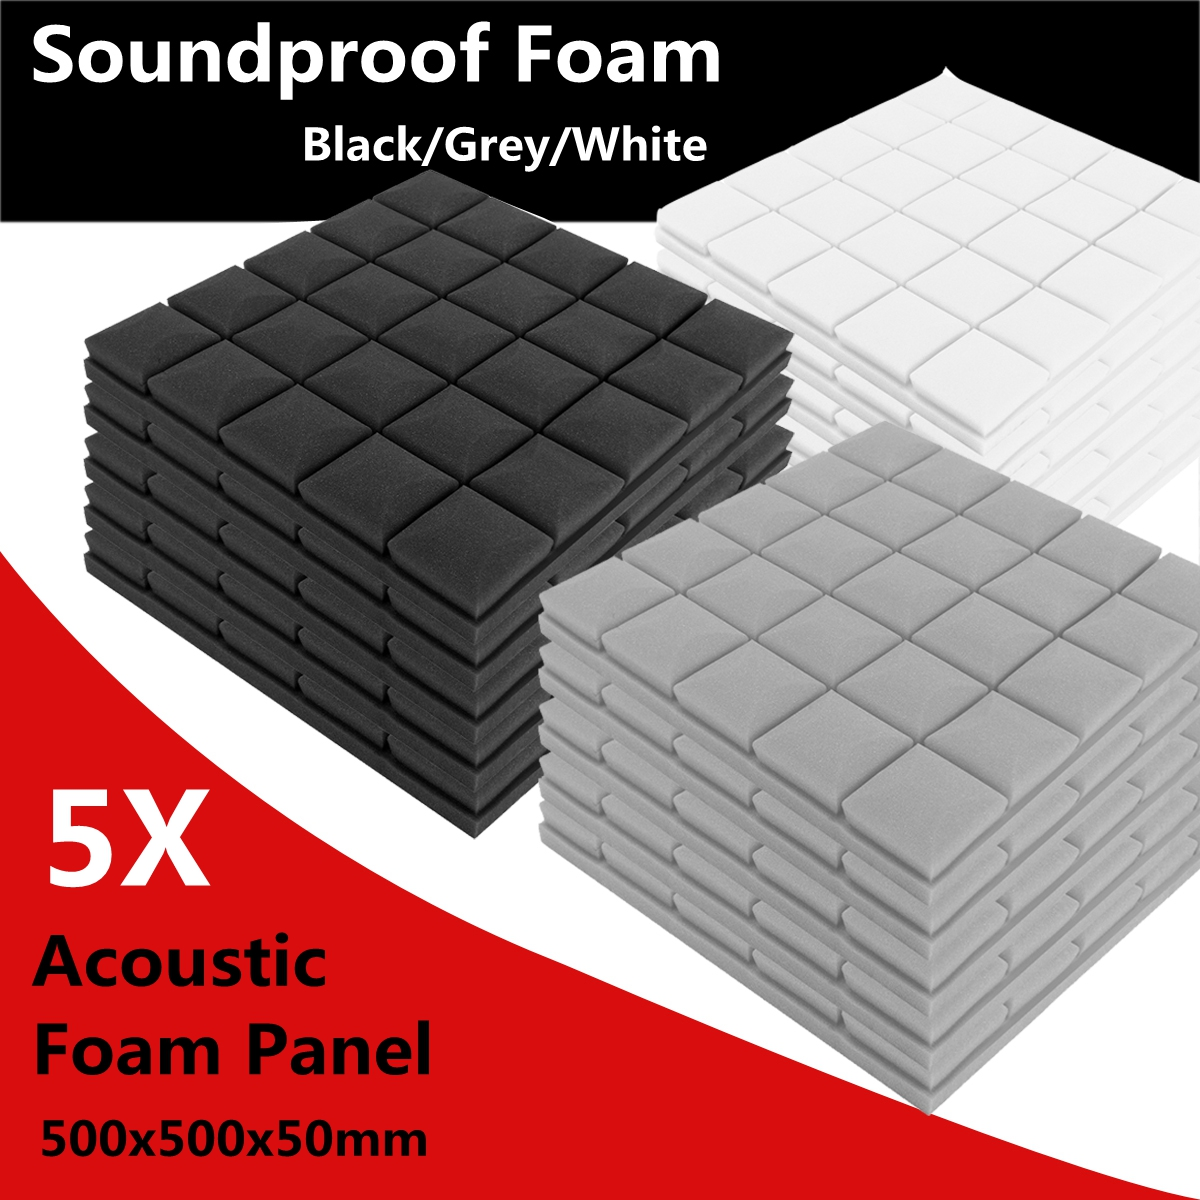 500x500x50mm Soundproof Foam Acoustic Sound Stop Absorption Sponge Drum Room Accessories sound absorption coefficient analysis